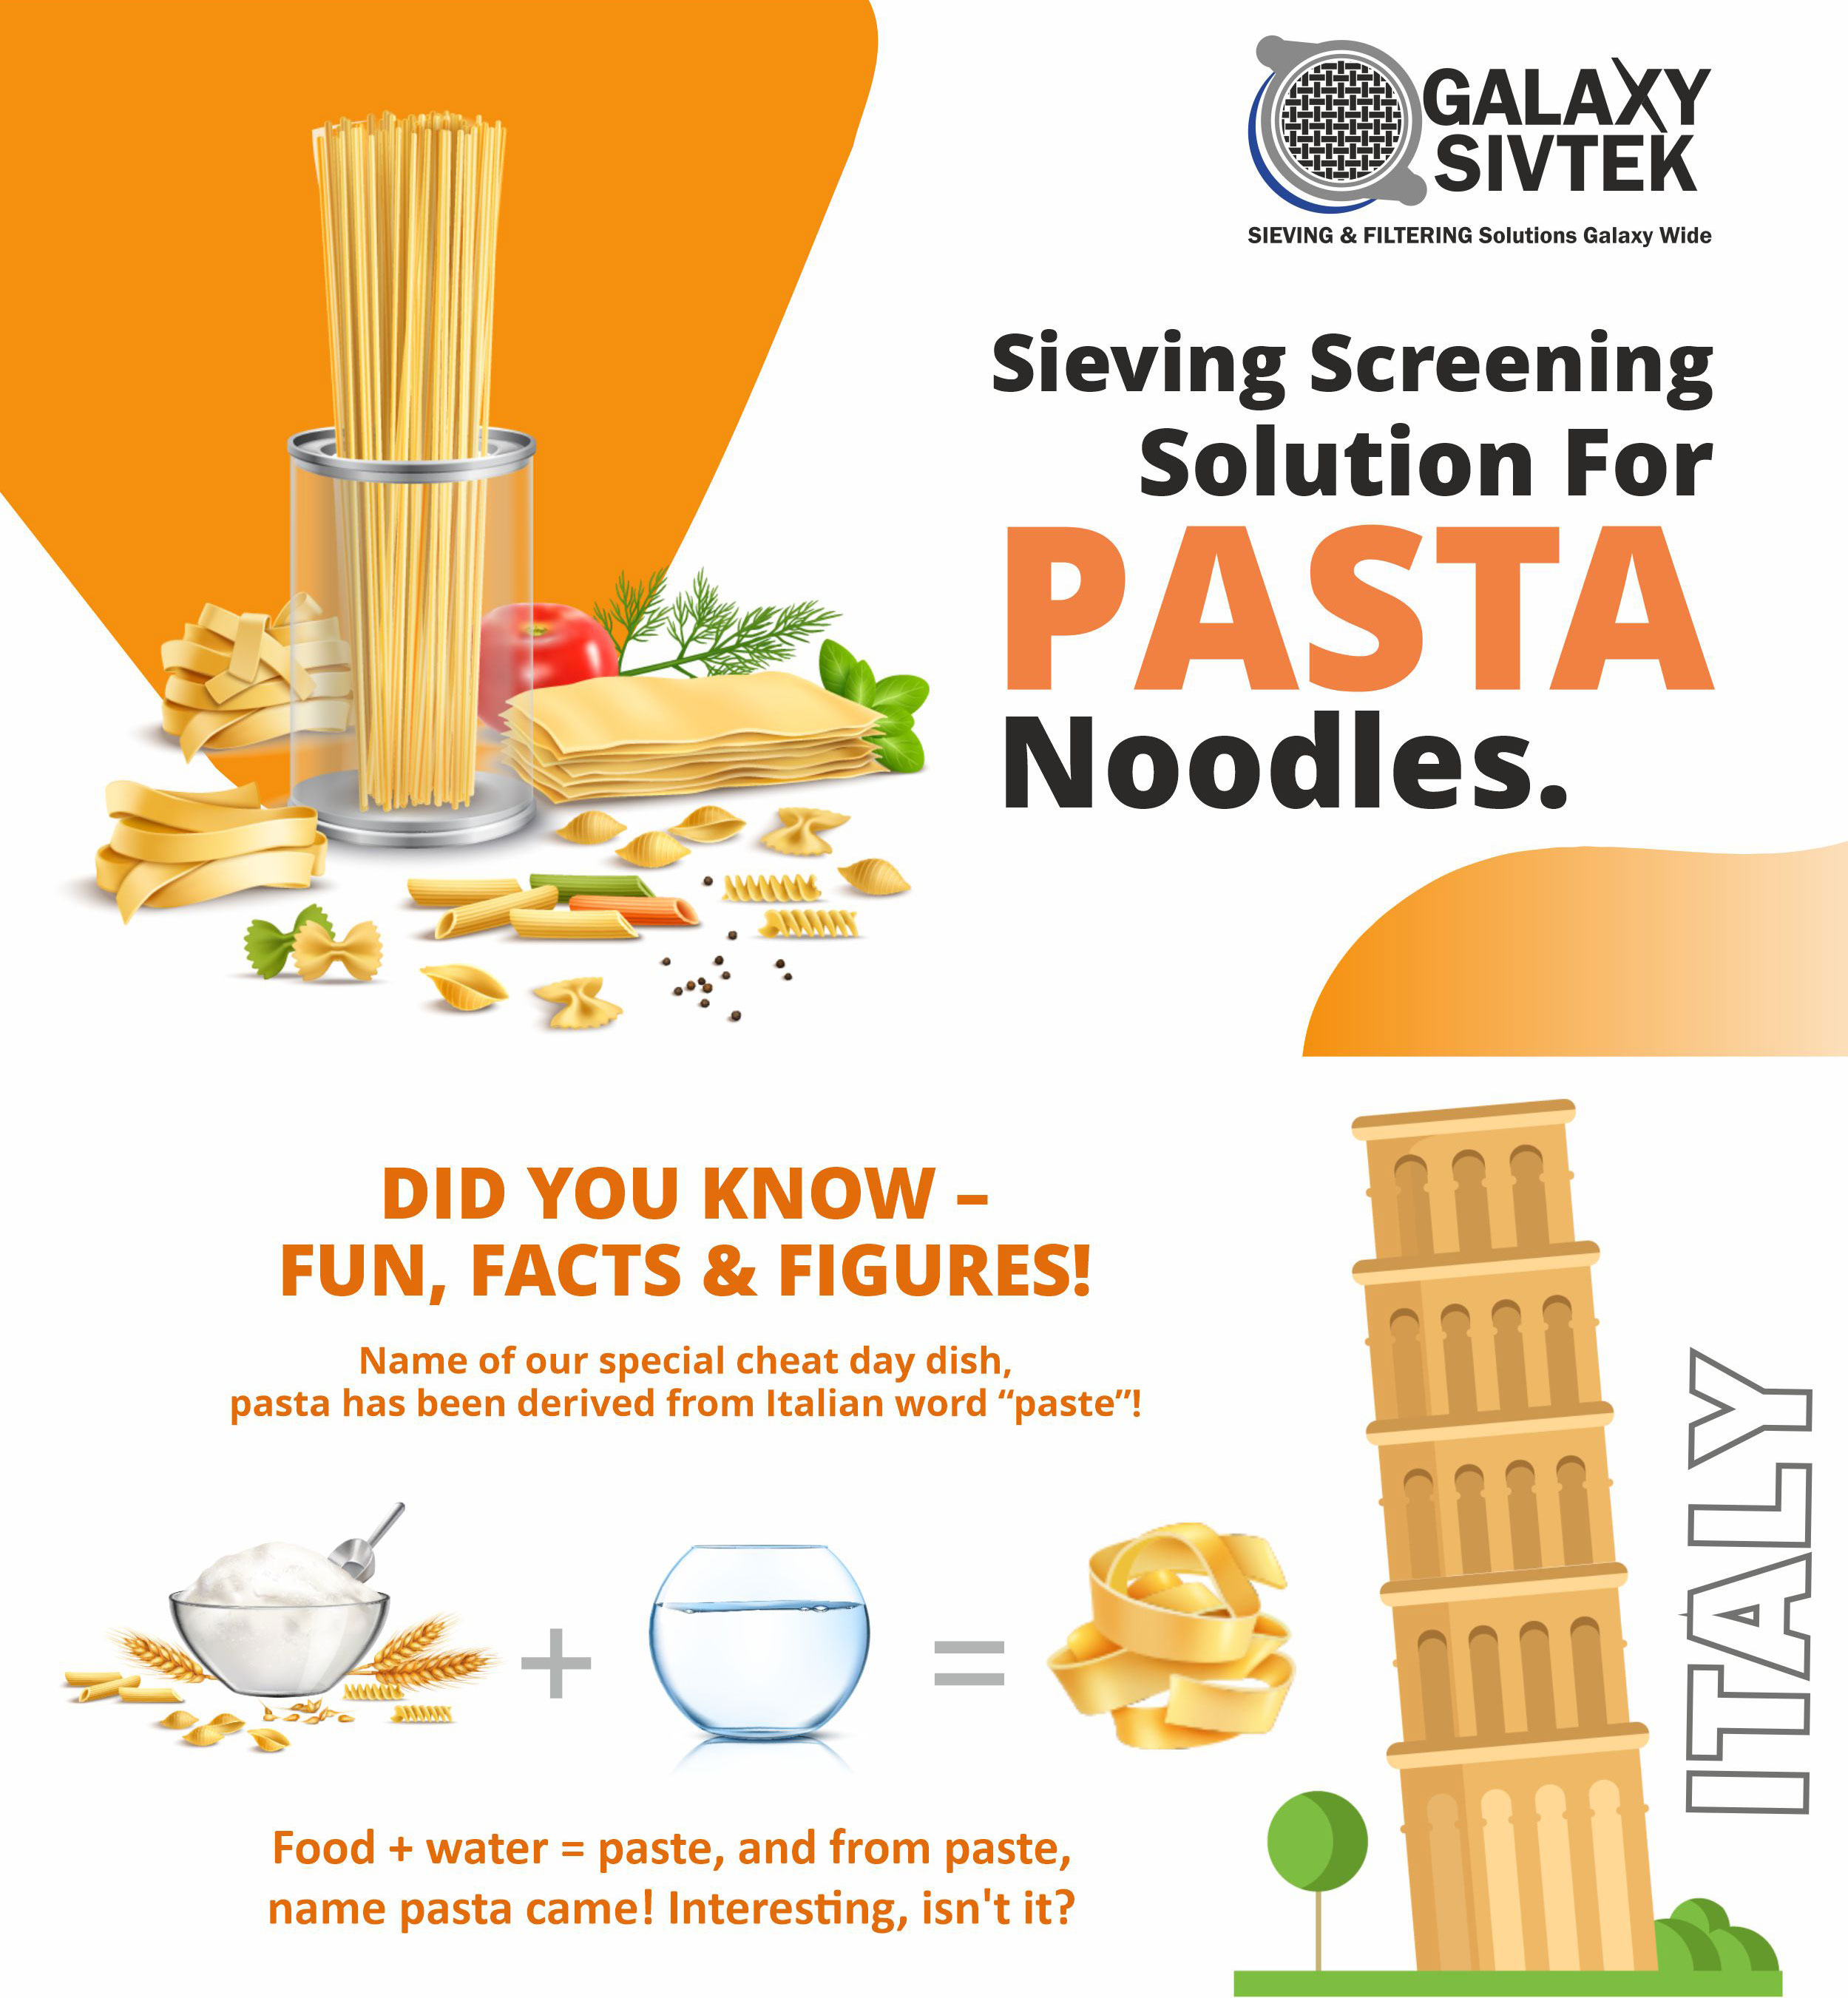 Fun facts about pasta